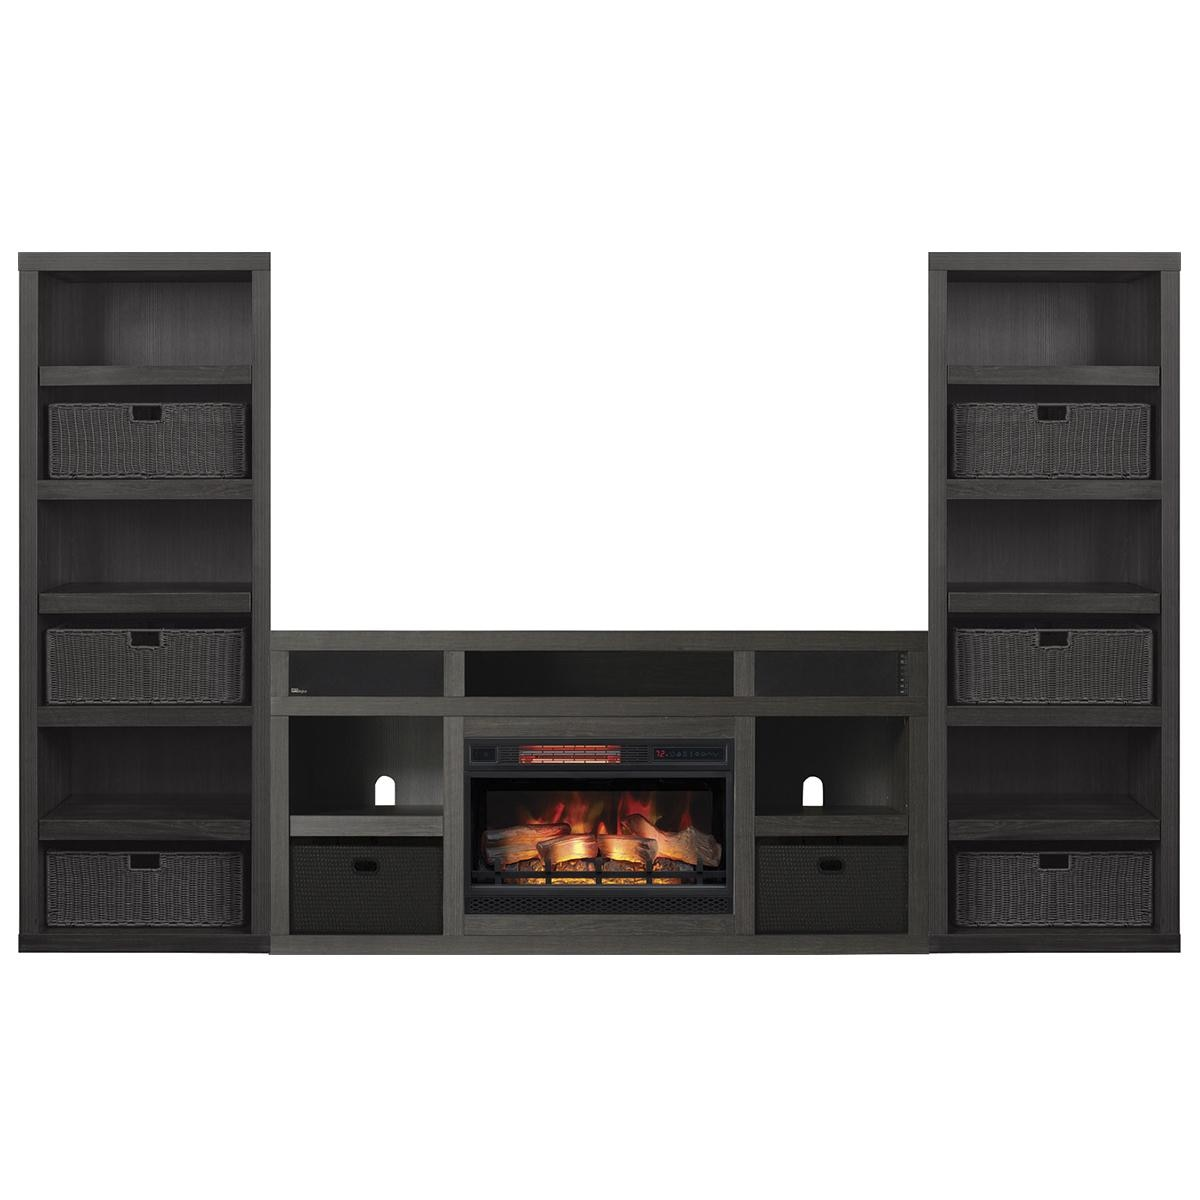 Chairs In Front Of Fireplace Inspirational Fabio Flames Greatlin 3 Piece Fireplace Entertainment Wall